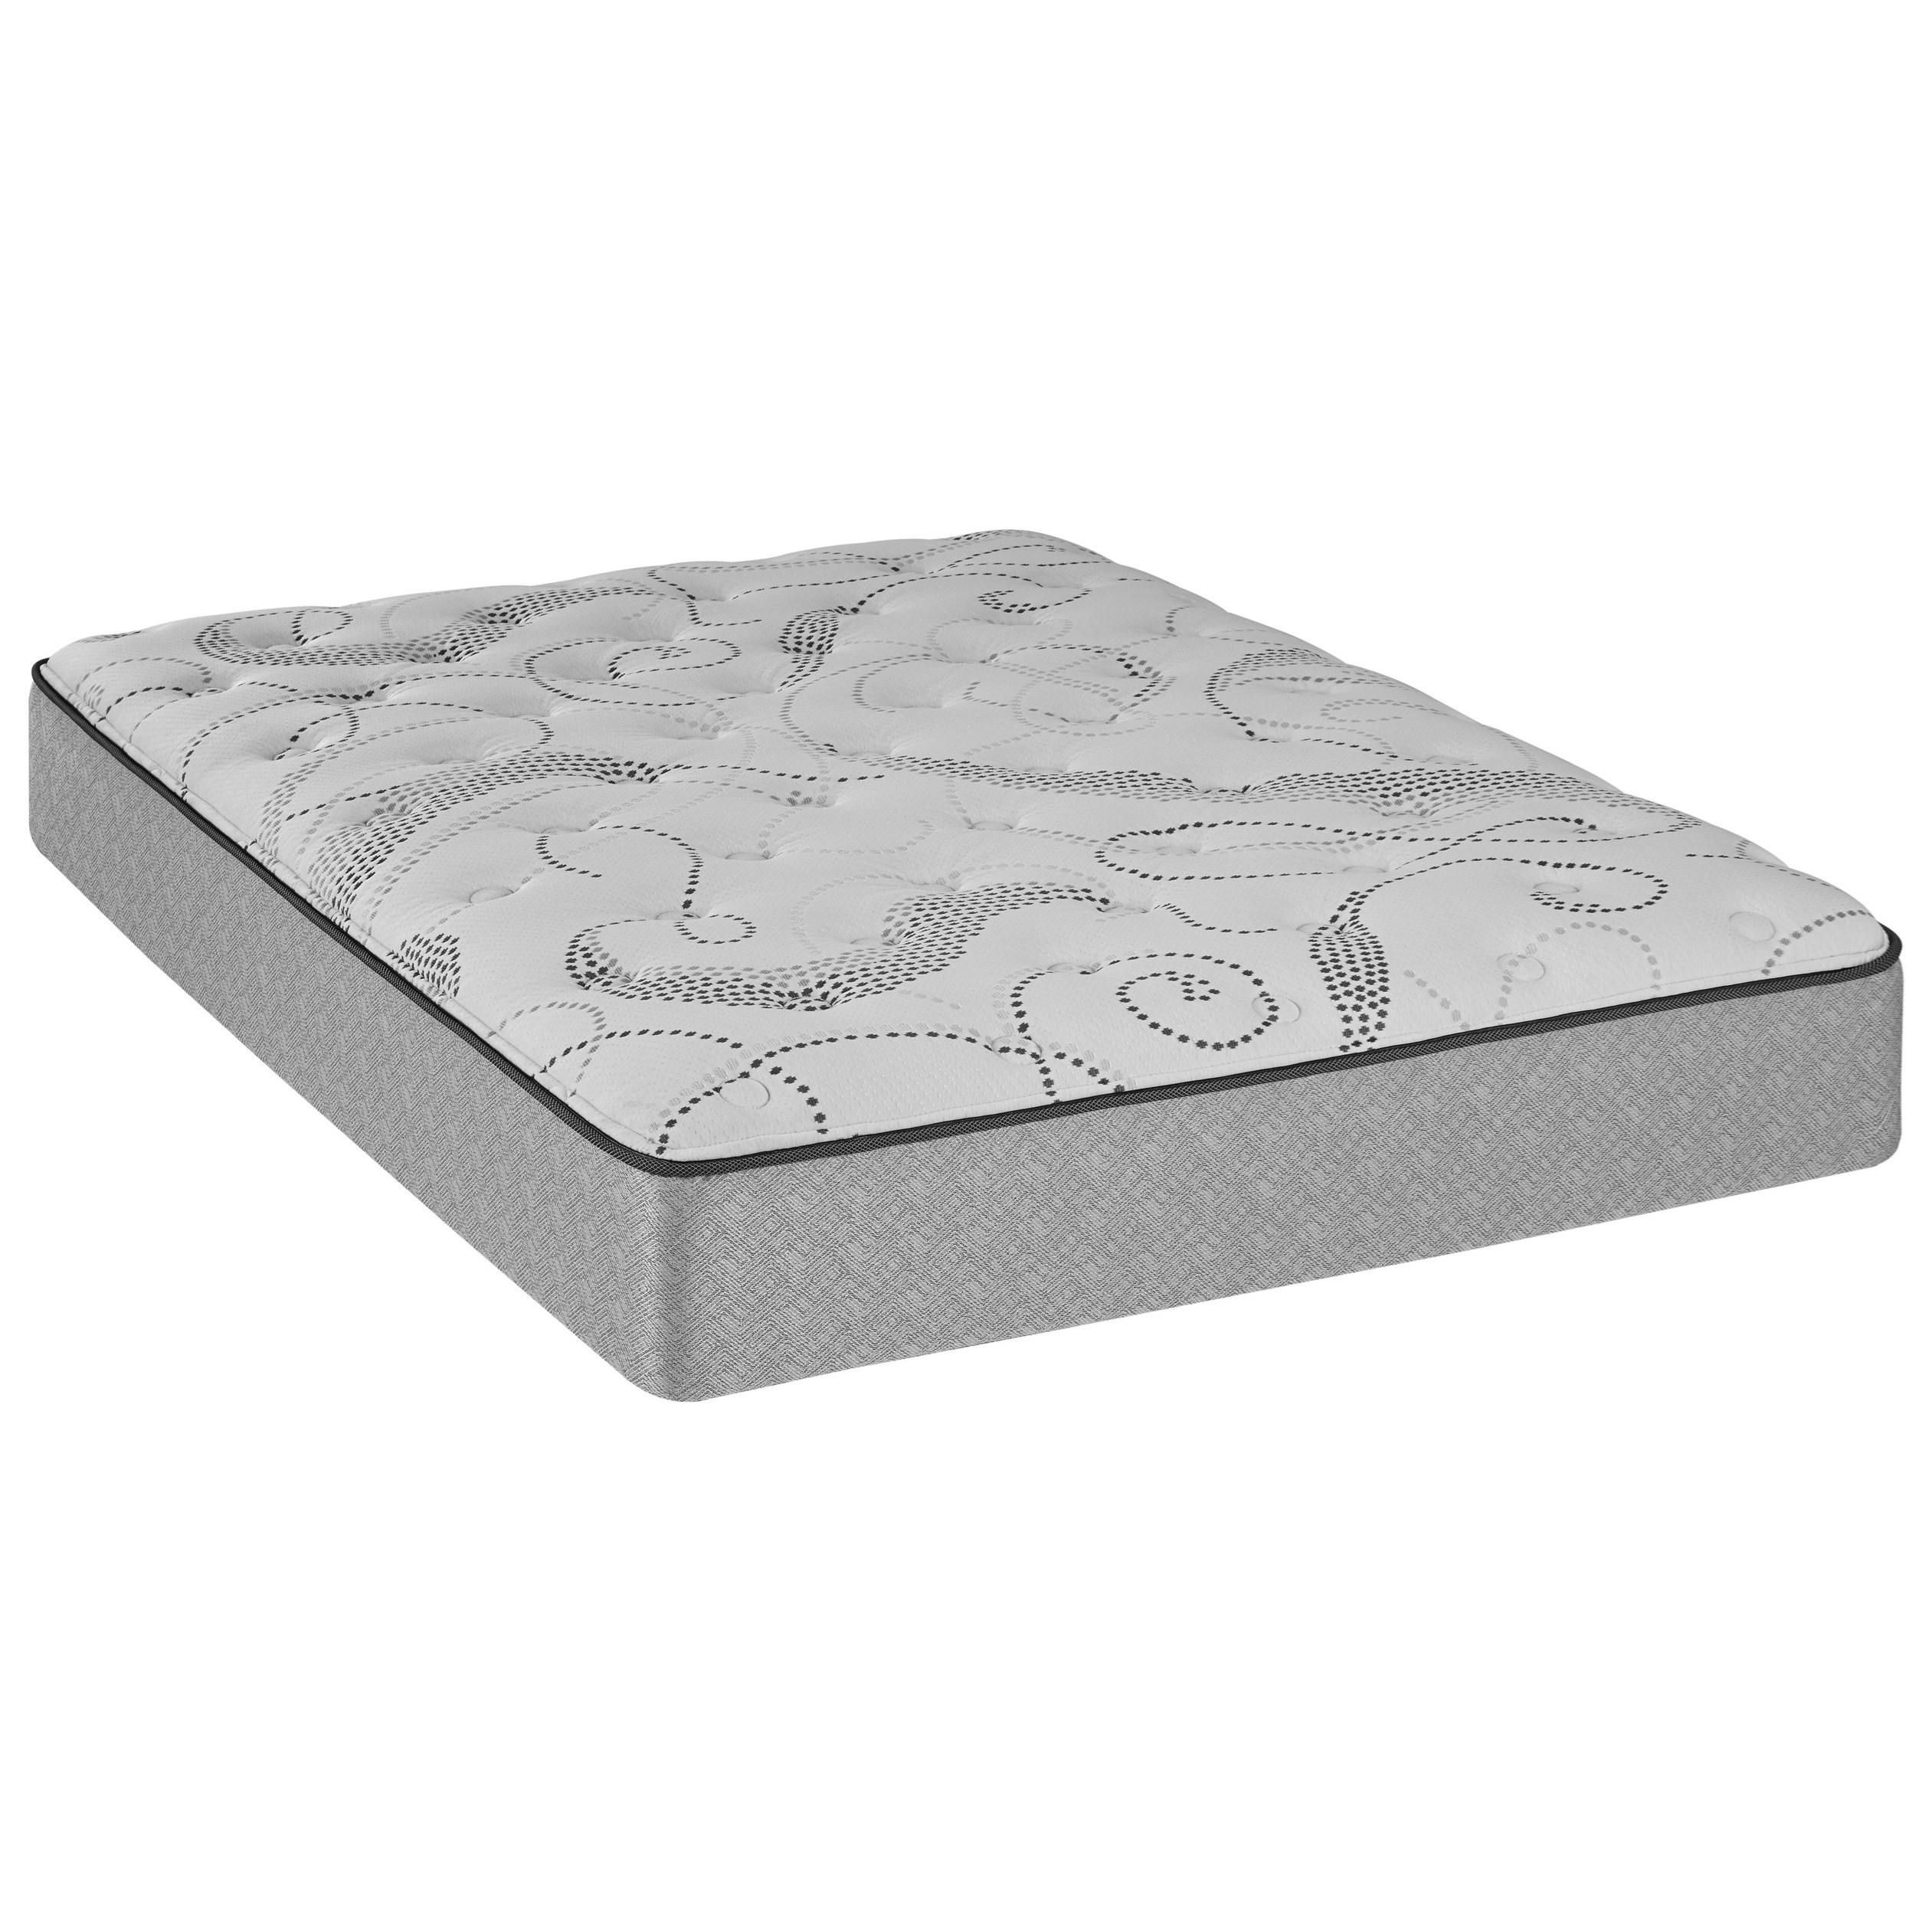 Sealy Sealy Watsonia Full Firm Mattress - Item Number: FirmTT-F